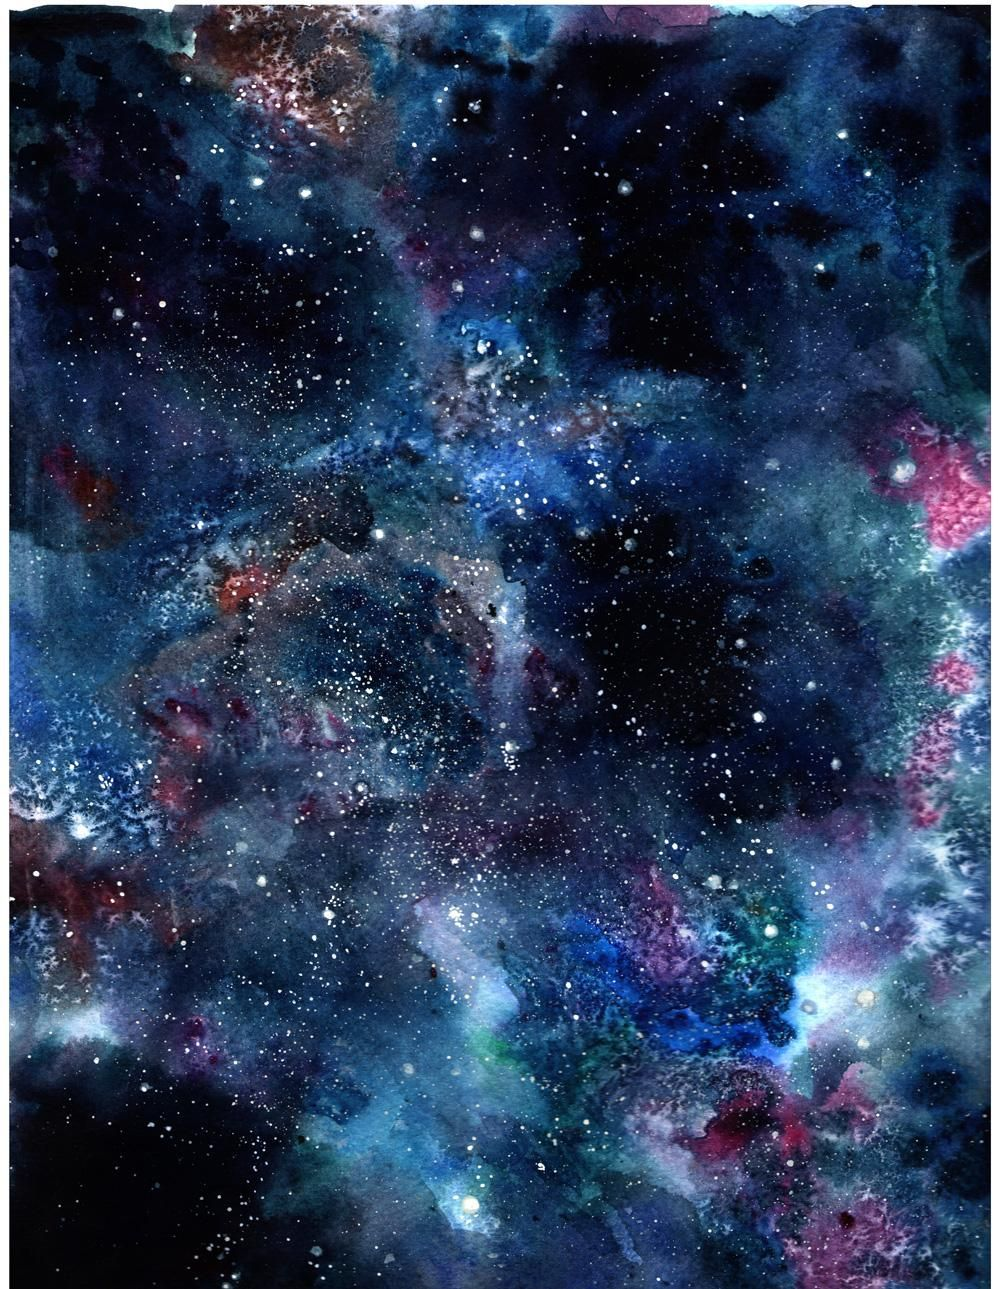 Galaxy Background / Christmas Card - image 2 - student project